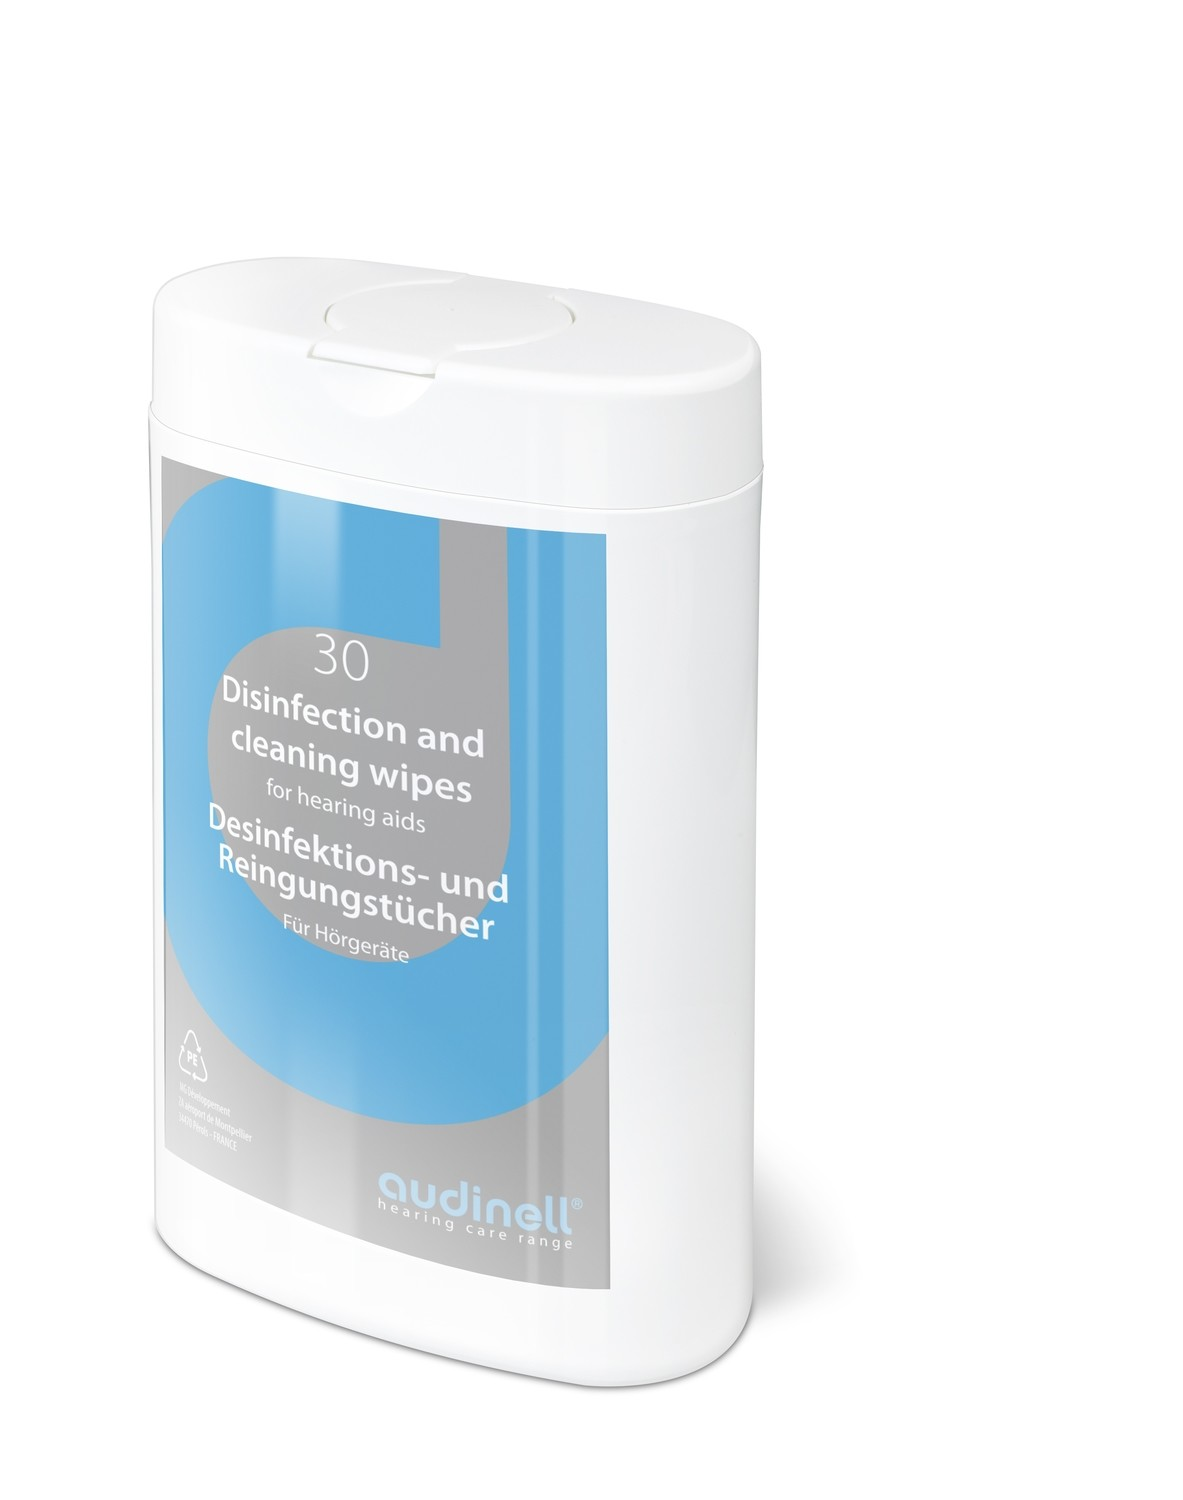 Hearing Aid Cleaning Wipes - 30 count container